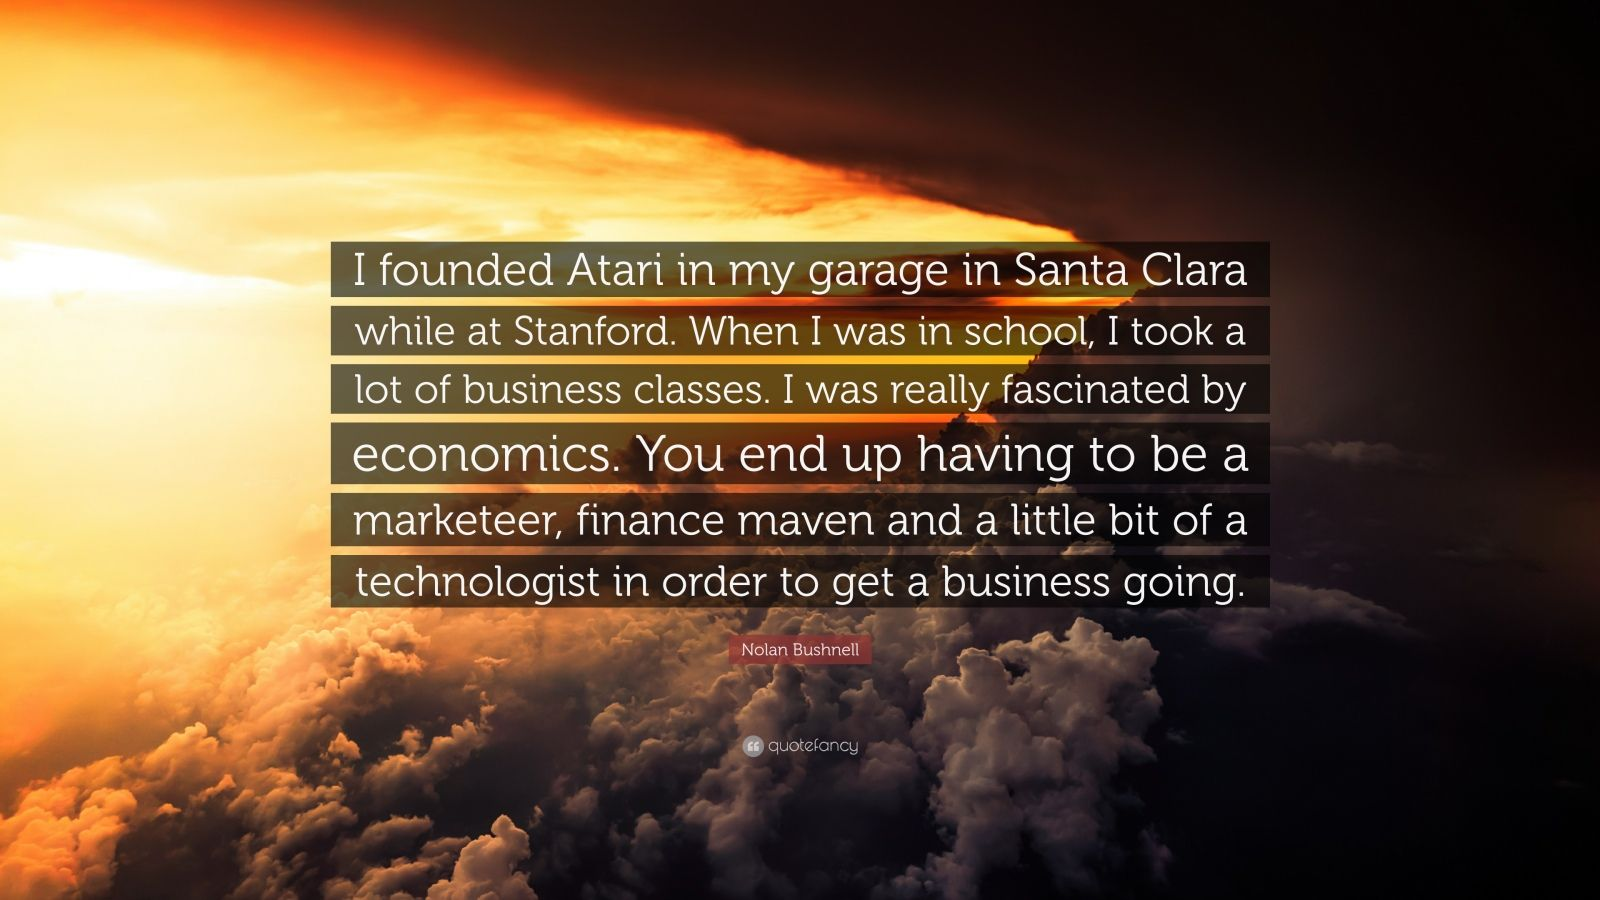 """Nolan Bushnell Quote: """"I founded Atari in my garage in Santa Clara while at Stanford. When I was in school, I took a lot of business classes. I was really fascinated by economics. You end up having to be a marketeer, finance maven and a little bit of a technologist in order to get a business going."""""""